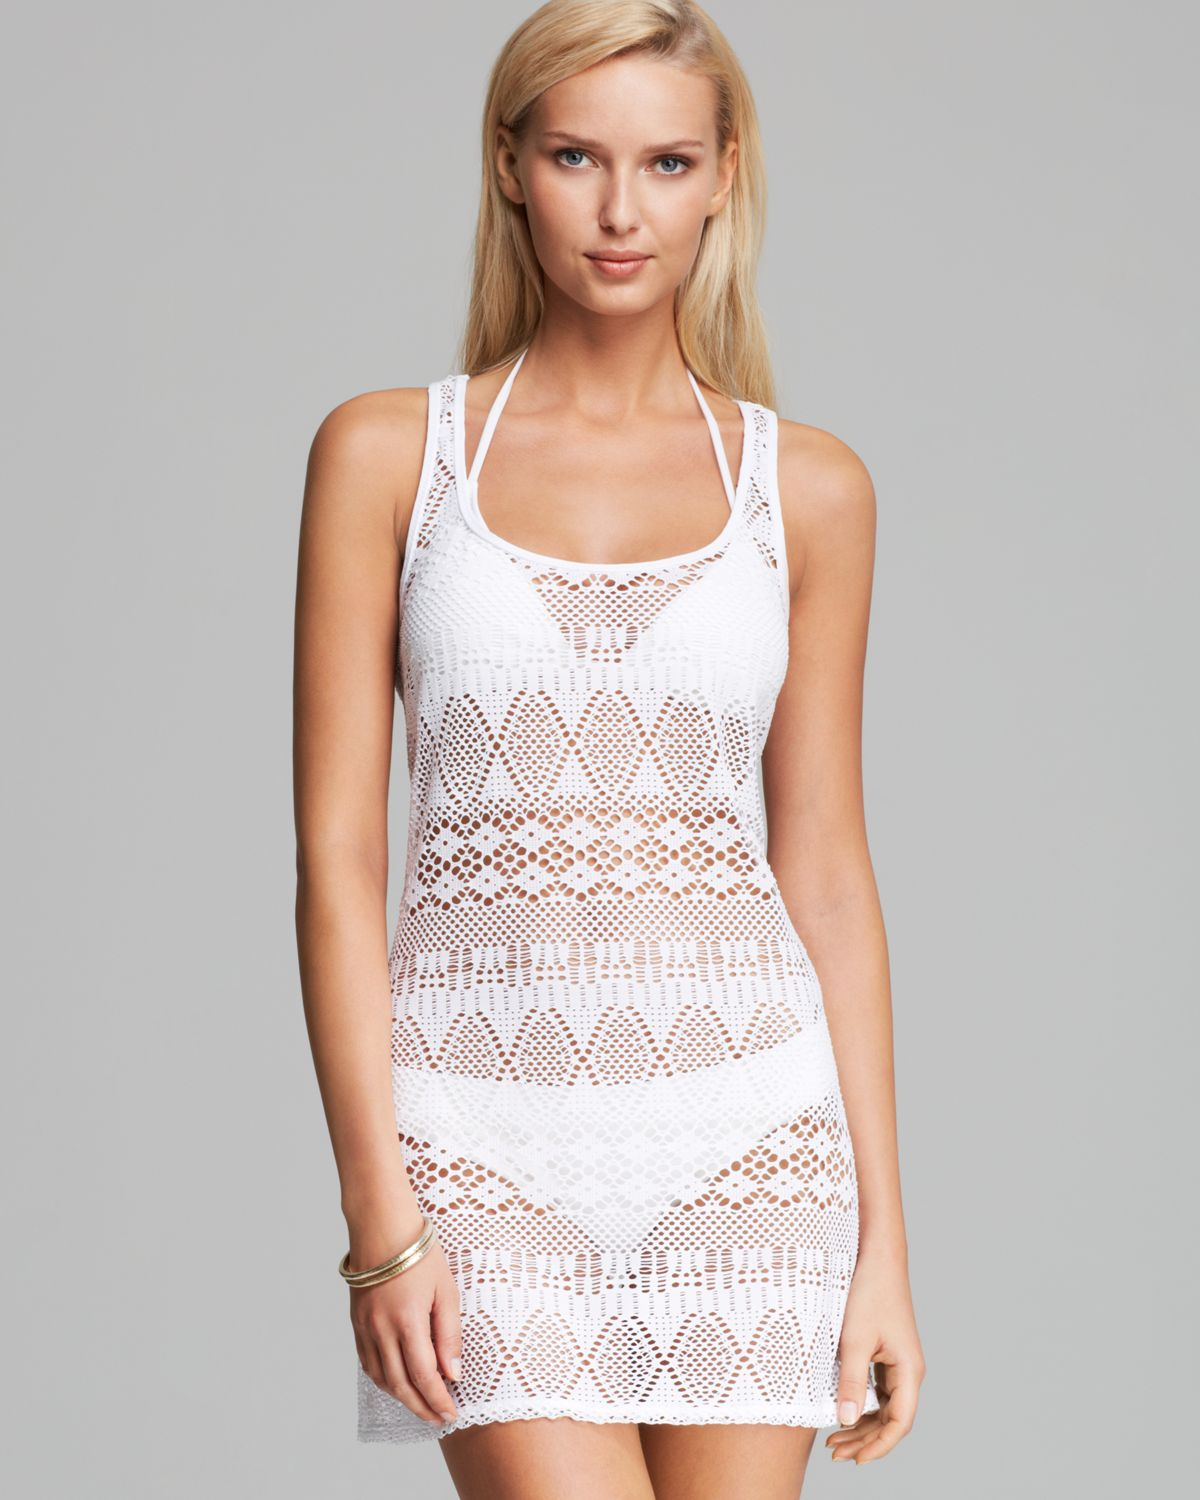 Ralph Lauren Blue Label Oasis Crochet Tank Dress Swim Cover Up In